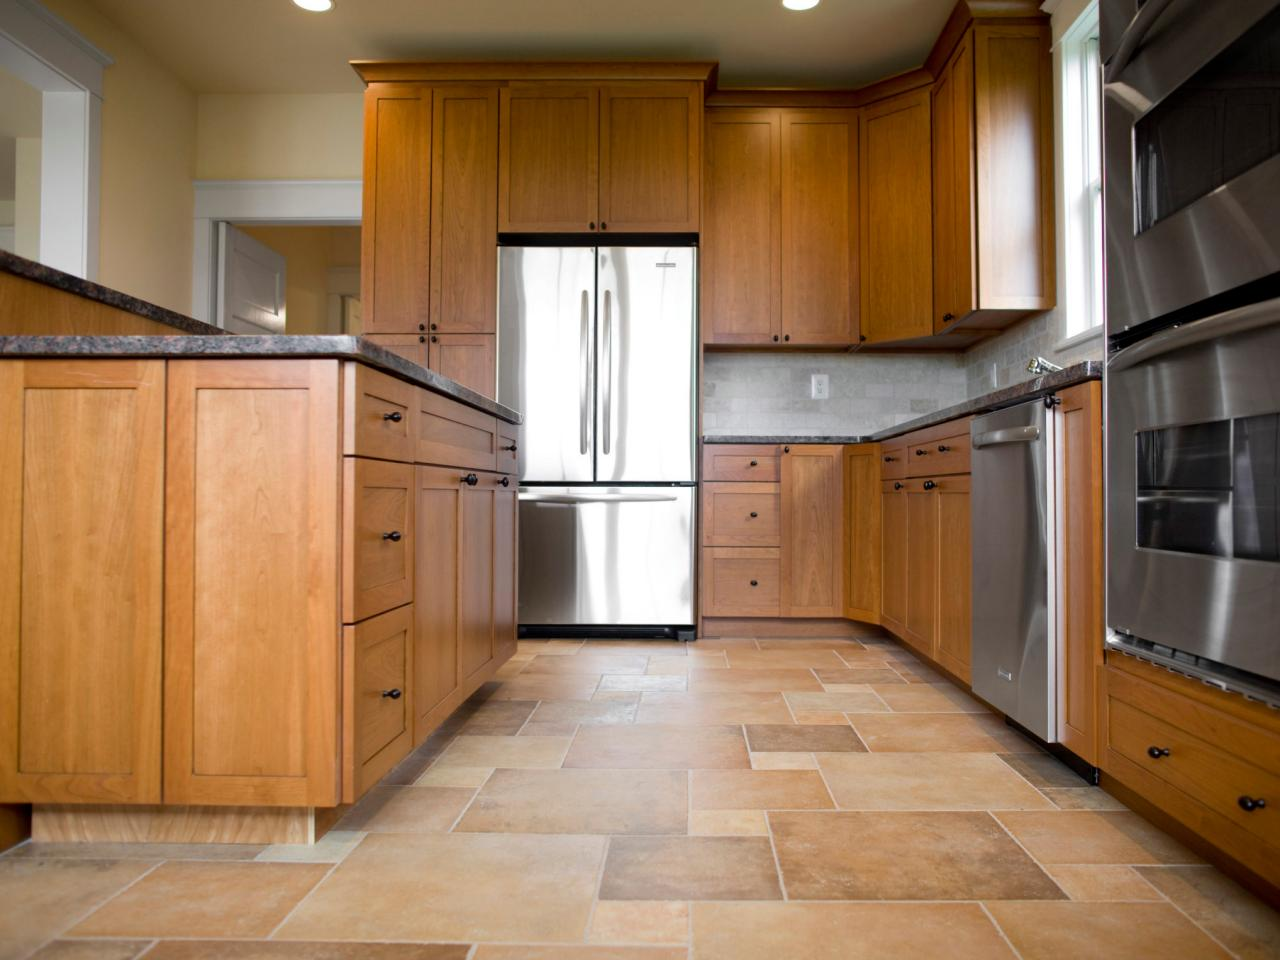 Tile kitchen flooring // sndimg.com